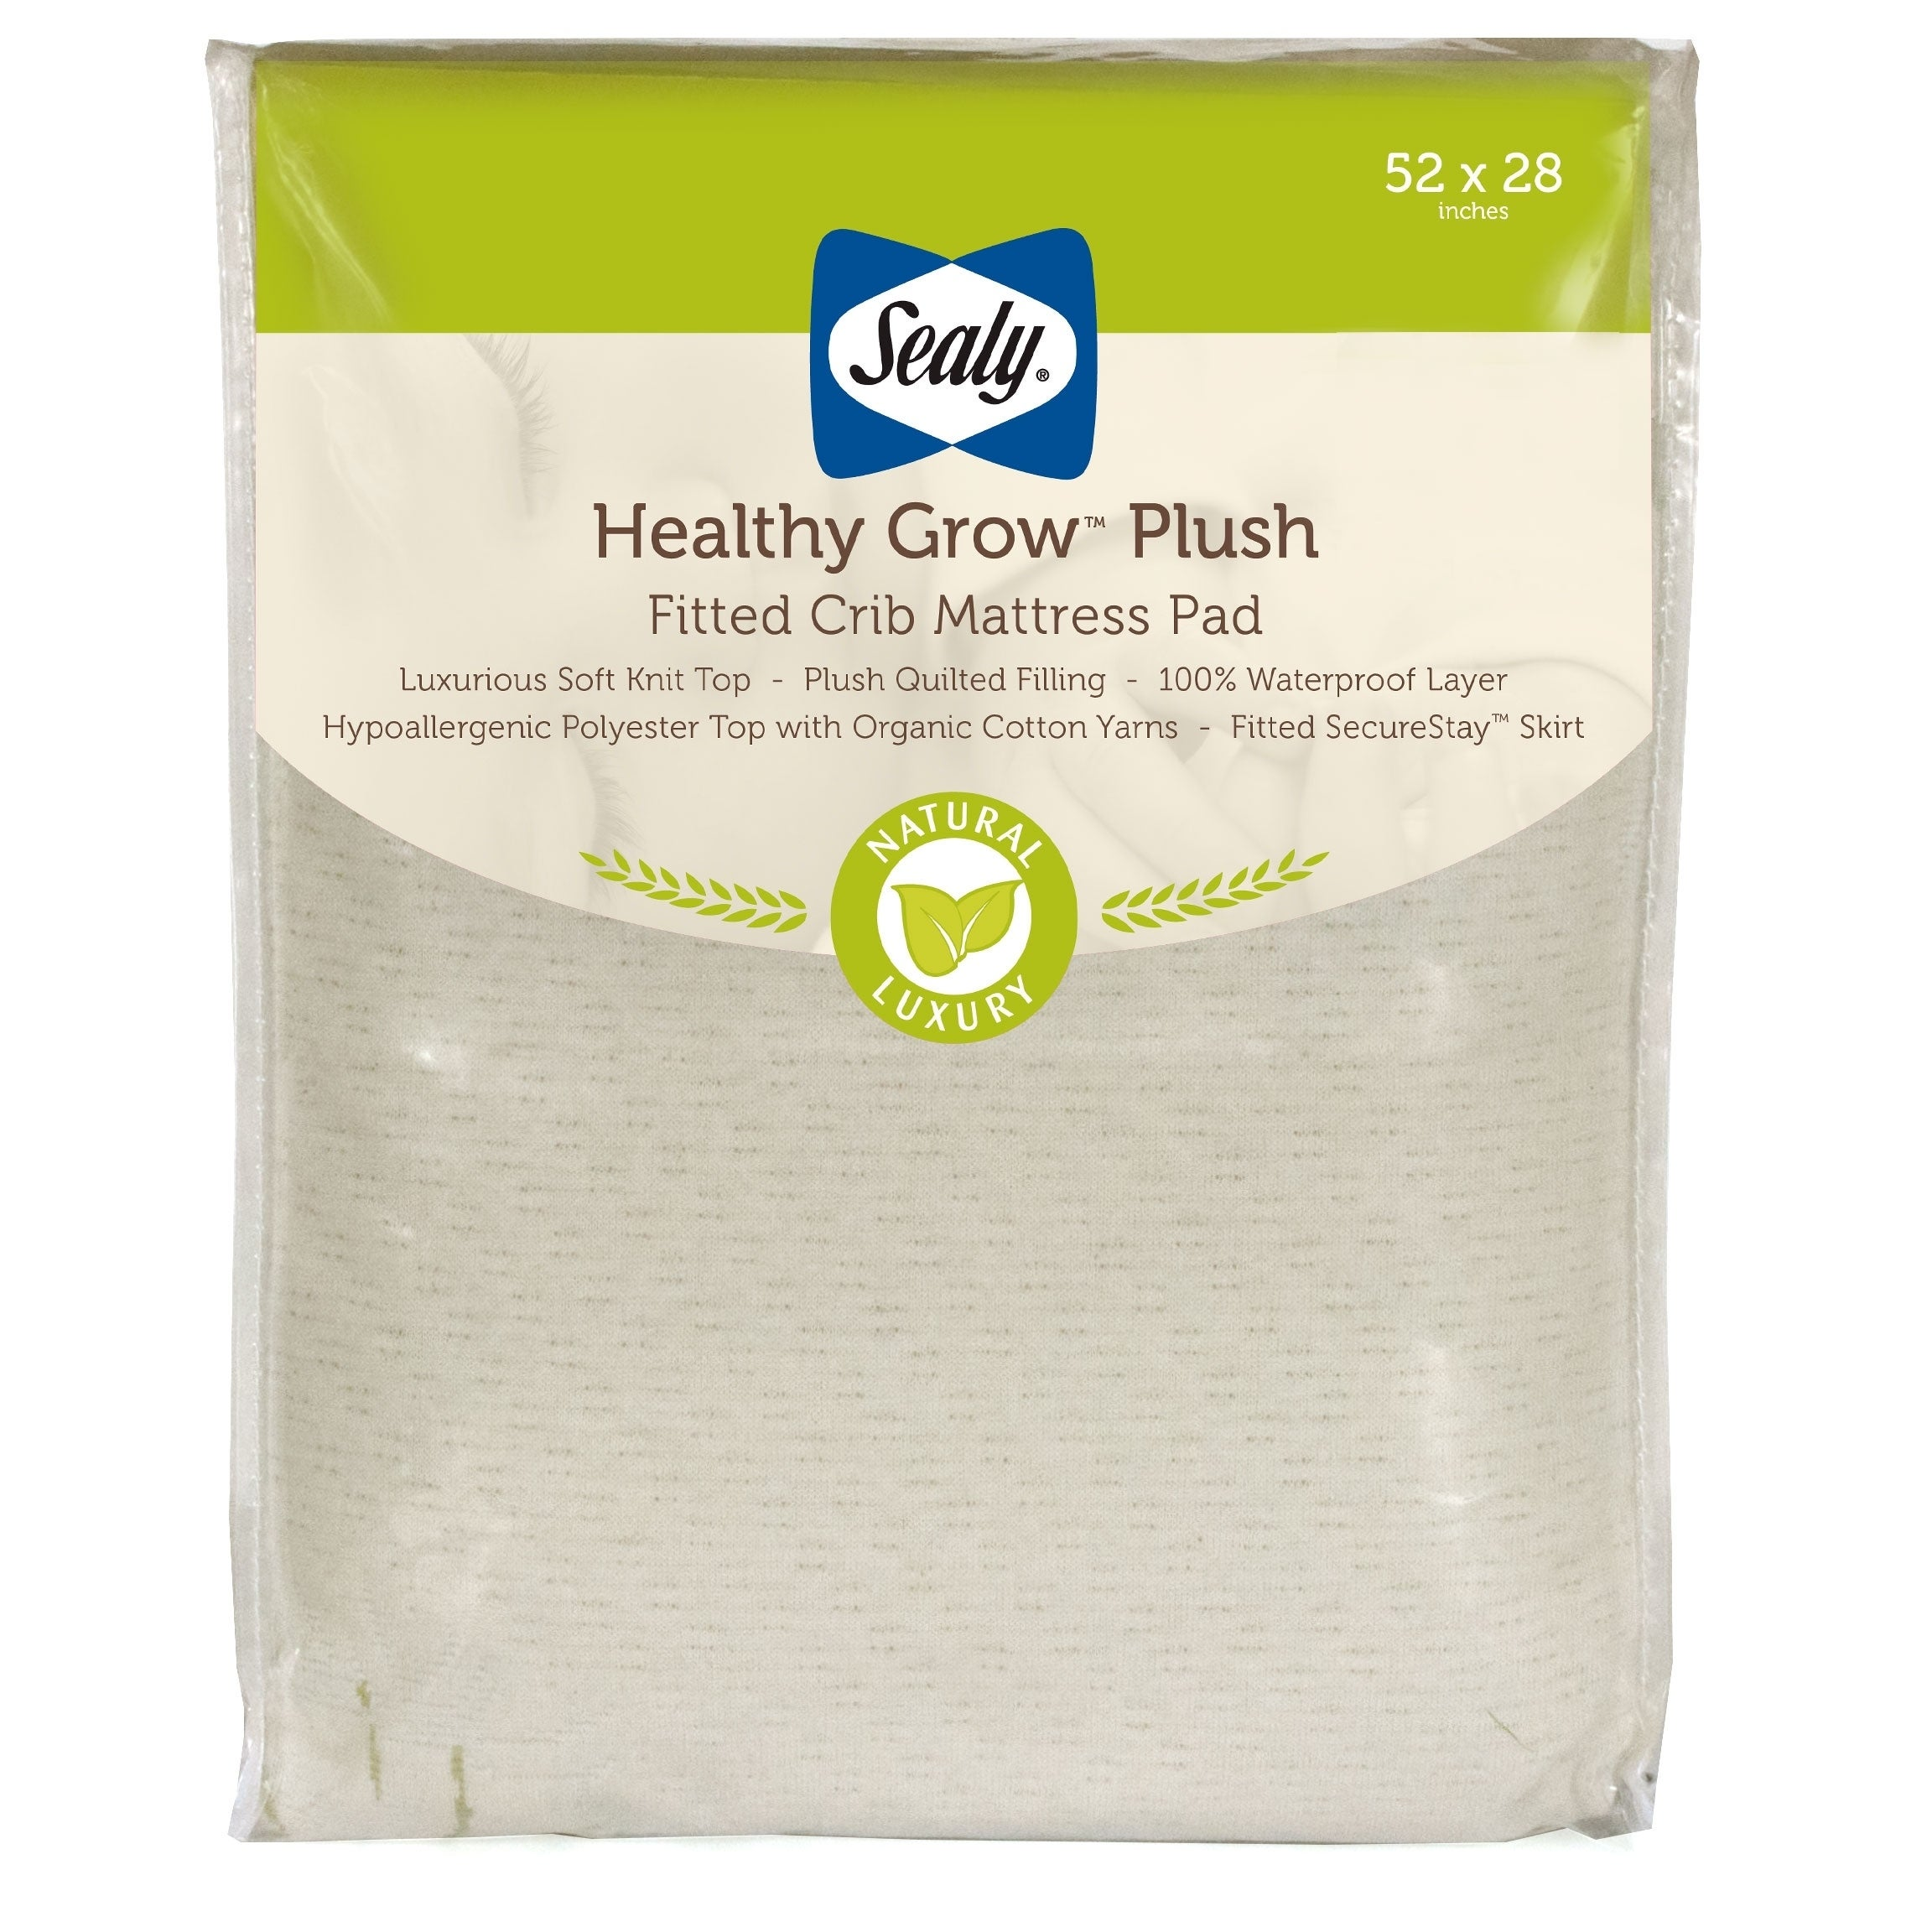 Sealy Healthy Grow Plush Infant Toddler Fitted Crib Mattr...